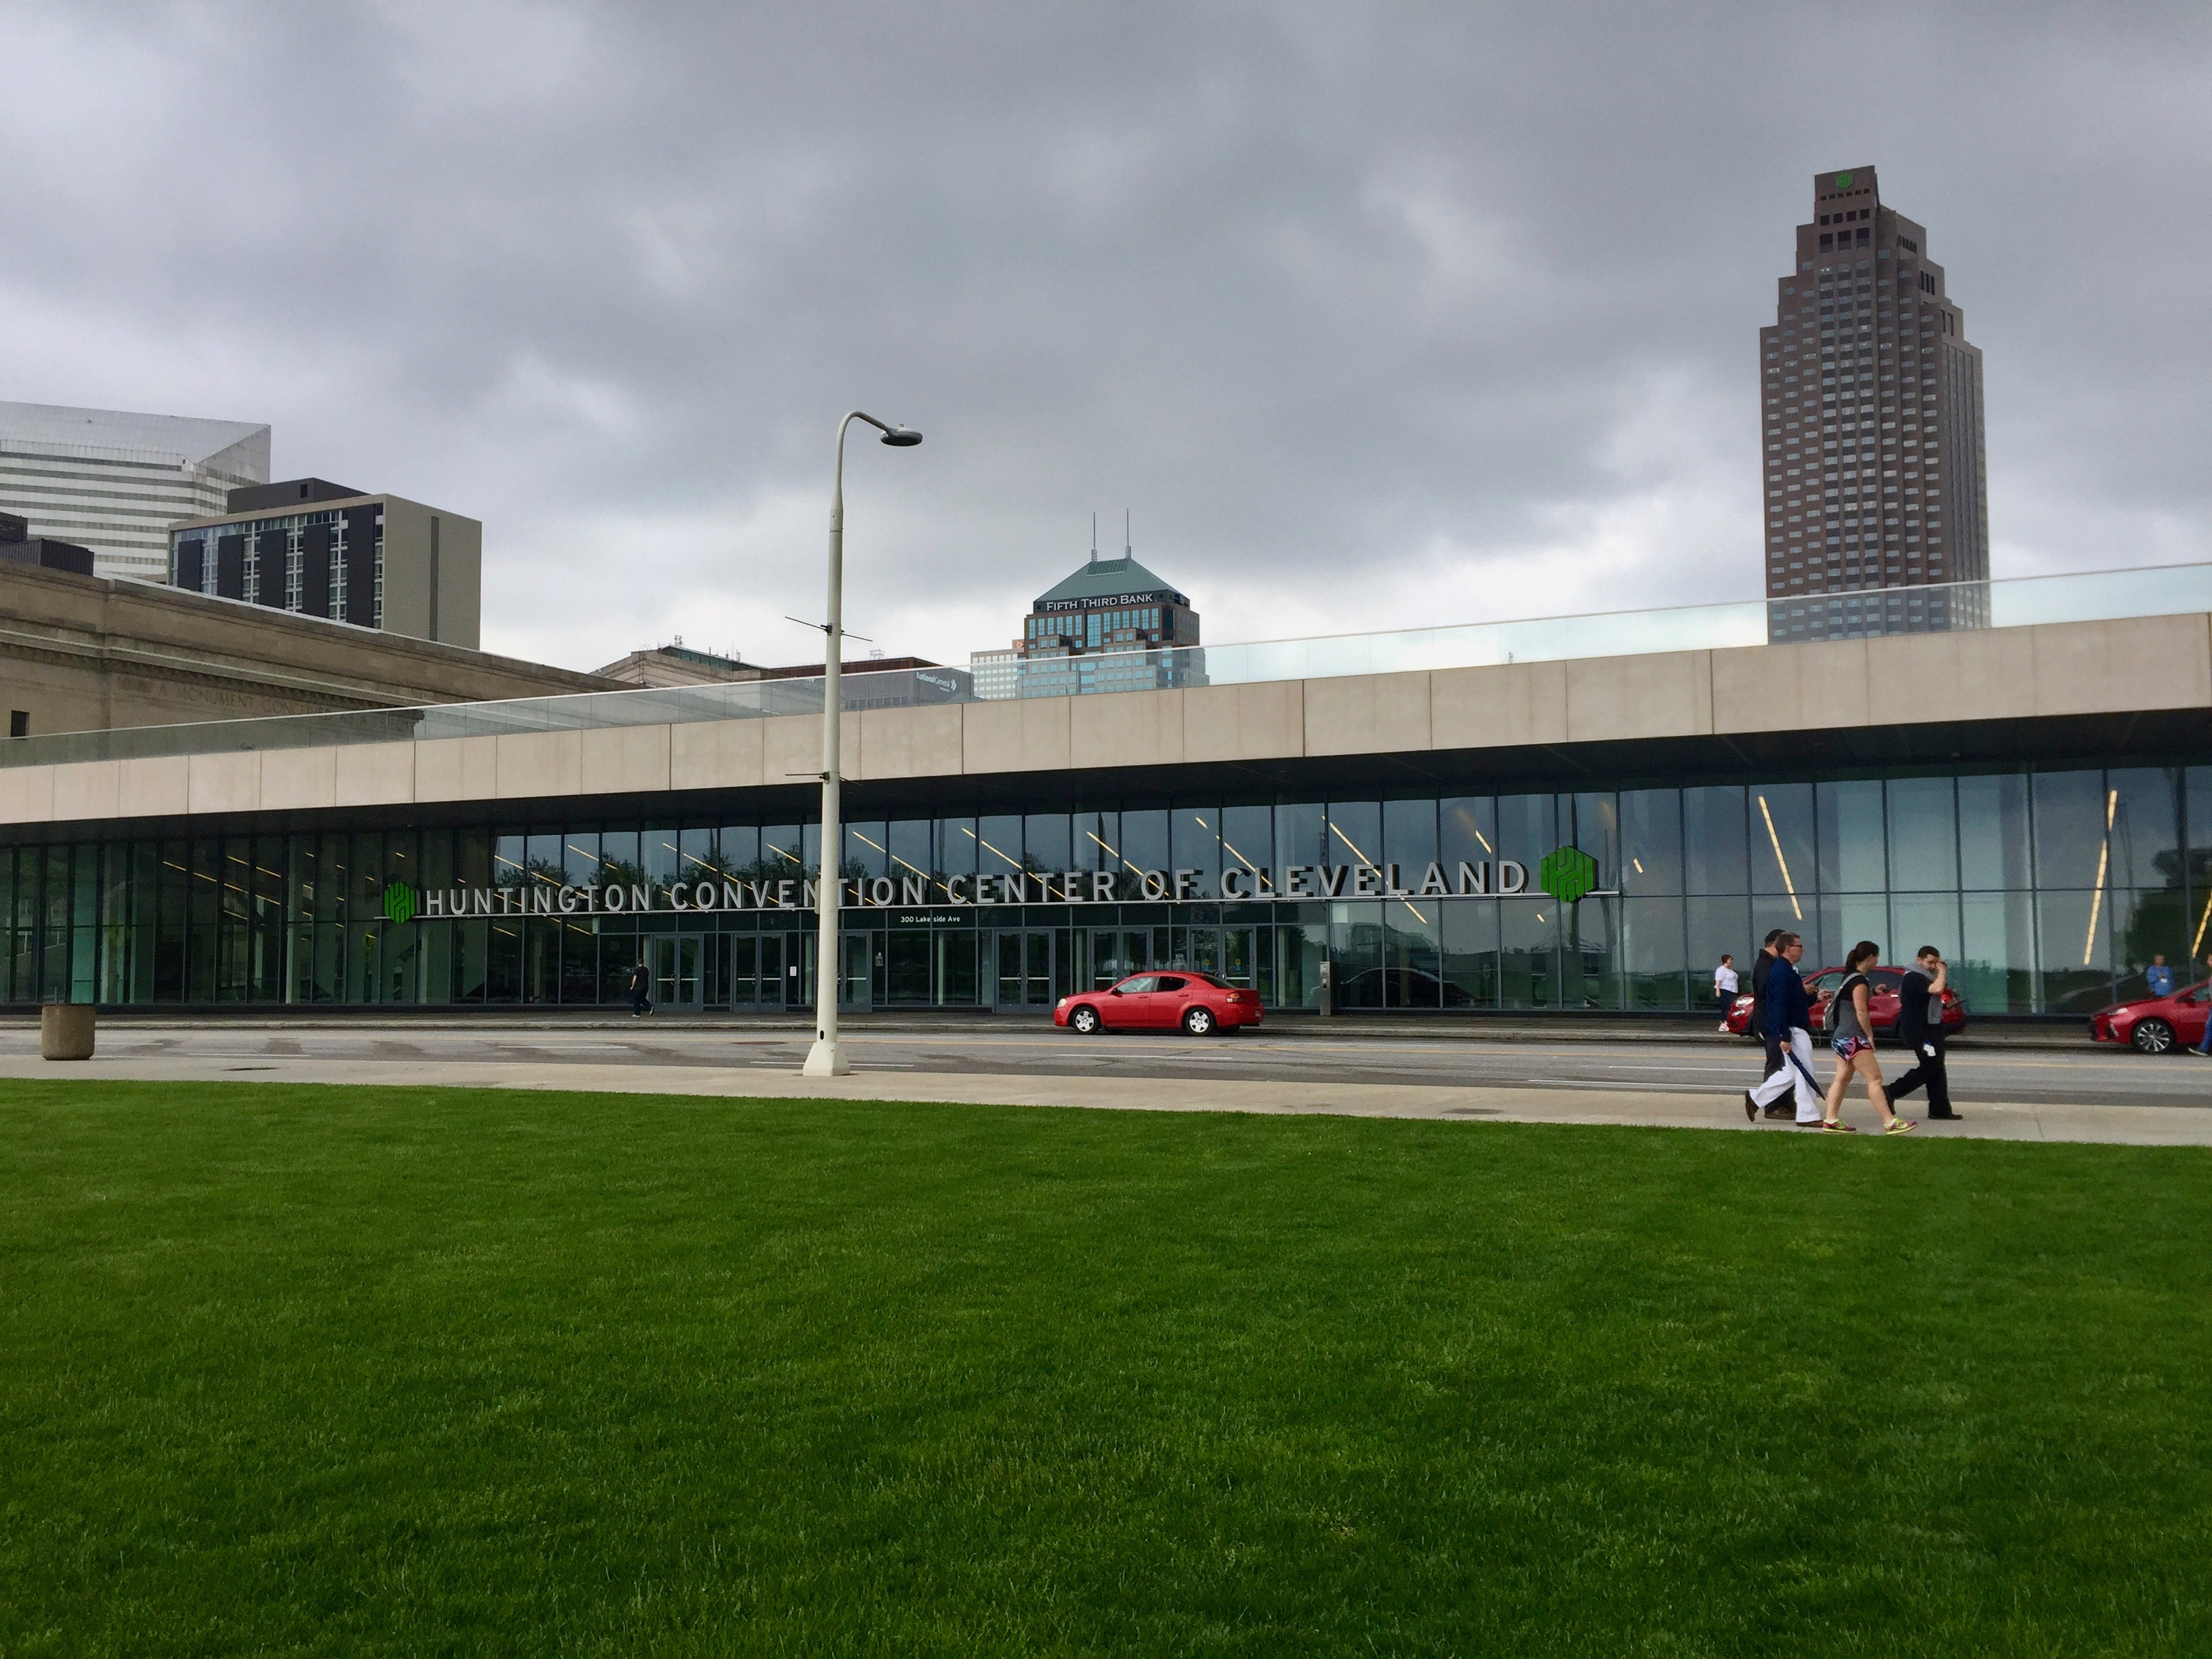 File:Convention Center, Cleveland, OH (27420329577).jpg